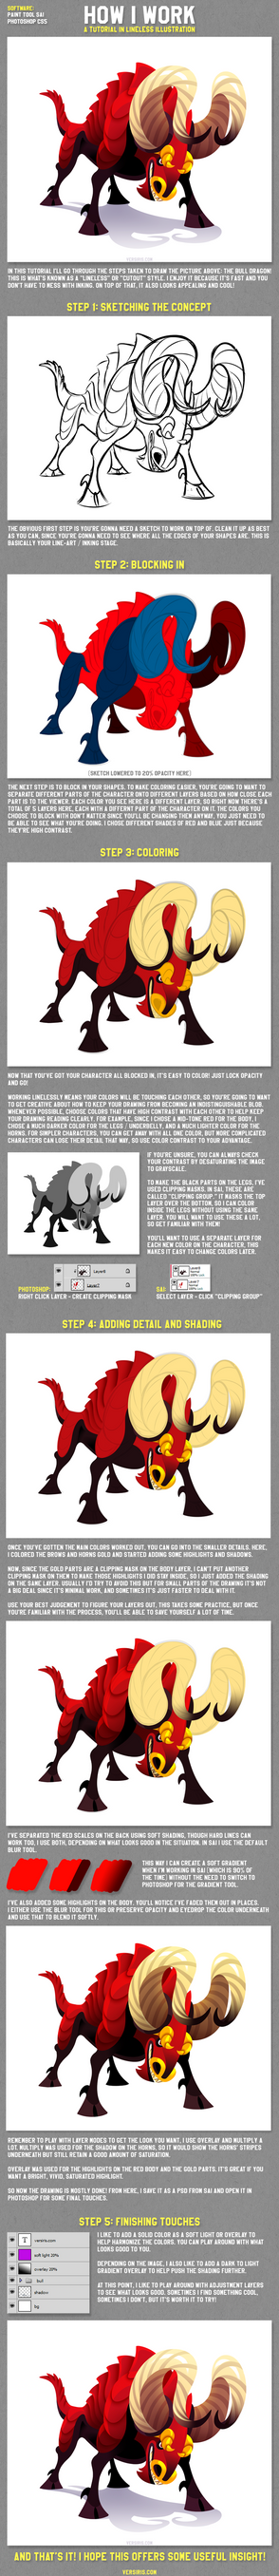 How I Work: A Lineless Illustration Tutorial